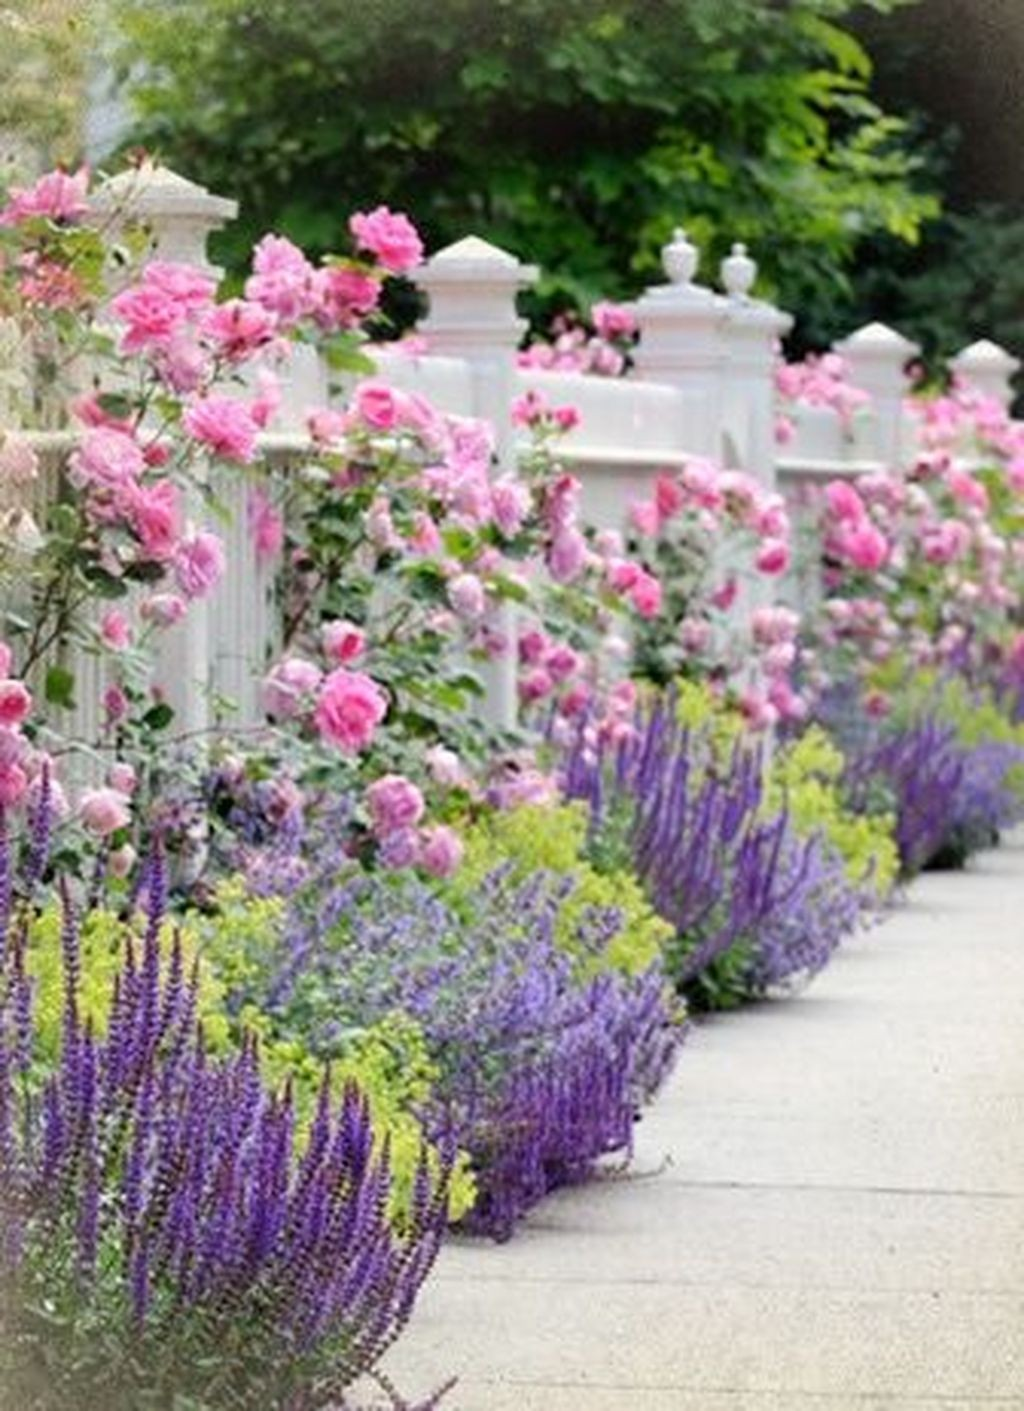 20 Beautiful Flower Garden Ideas For Your Home 01